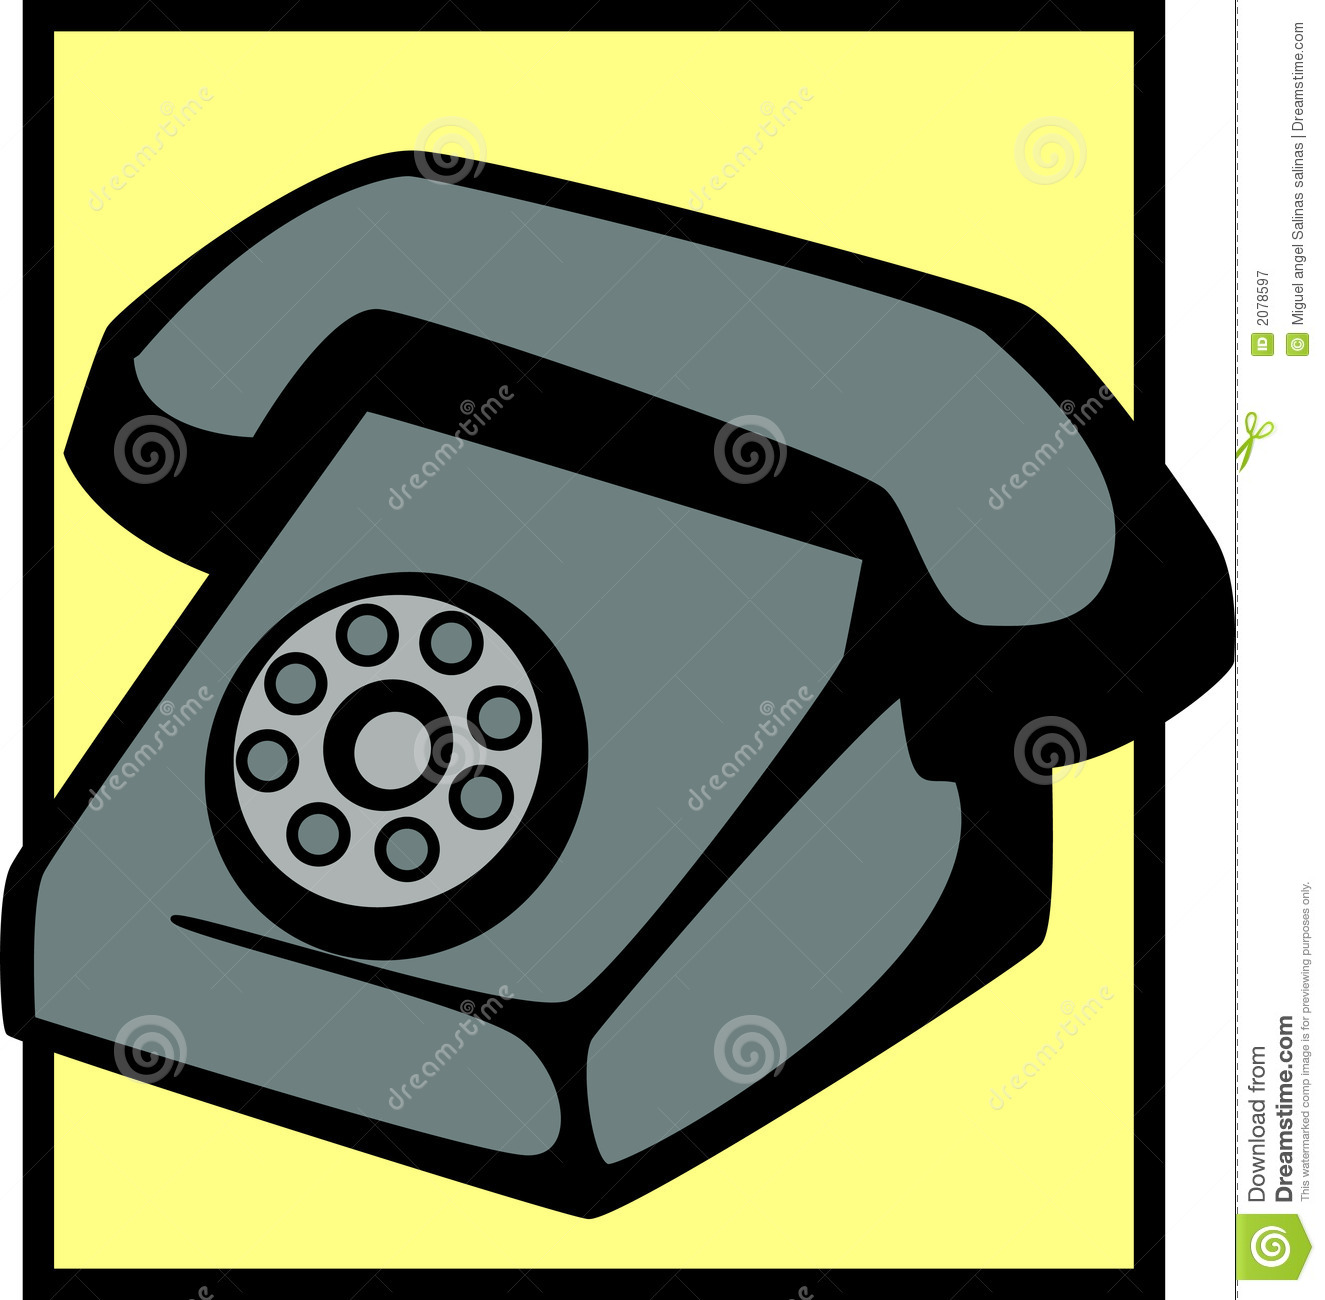 vintage telephone vector illustrationVintage Telephone Illustration